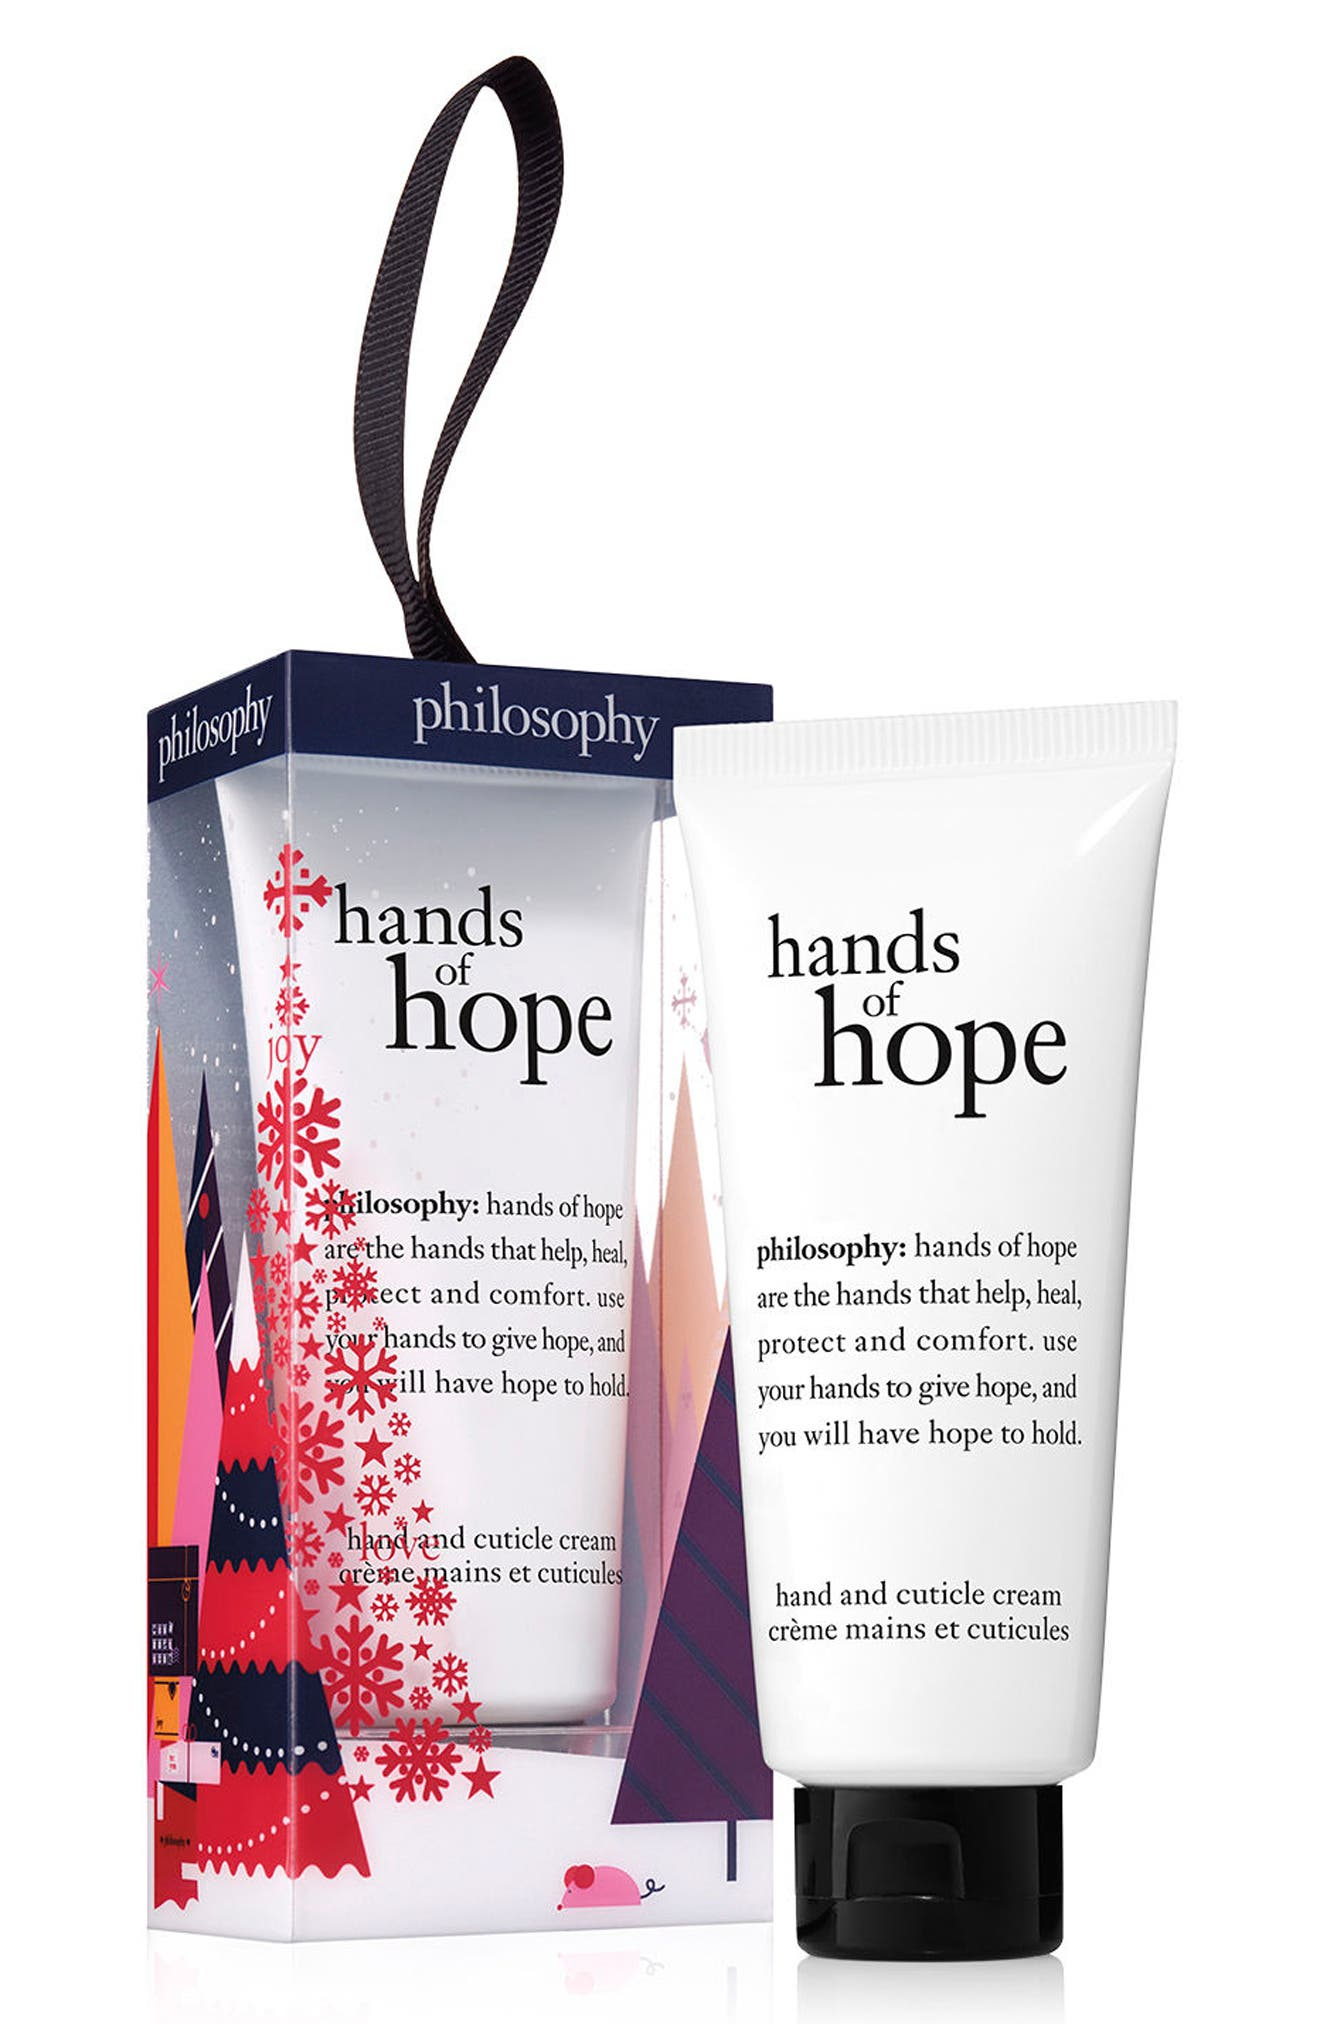 Alternate Image 1 Selected - philosophy hands of hope hand & cuticle cream ornament (Limited Edition)